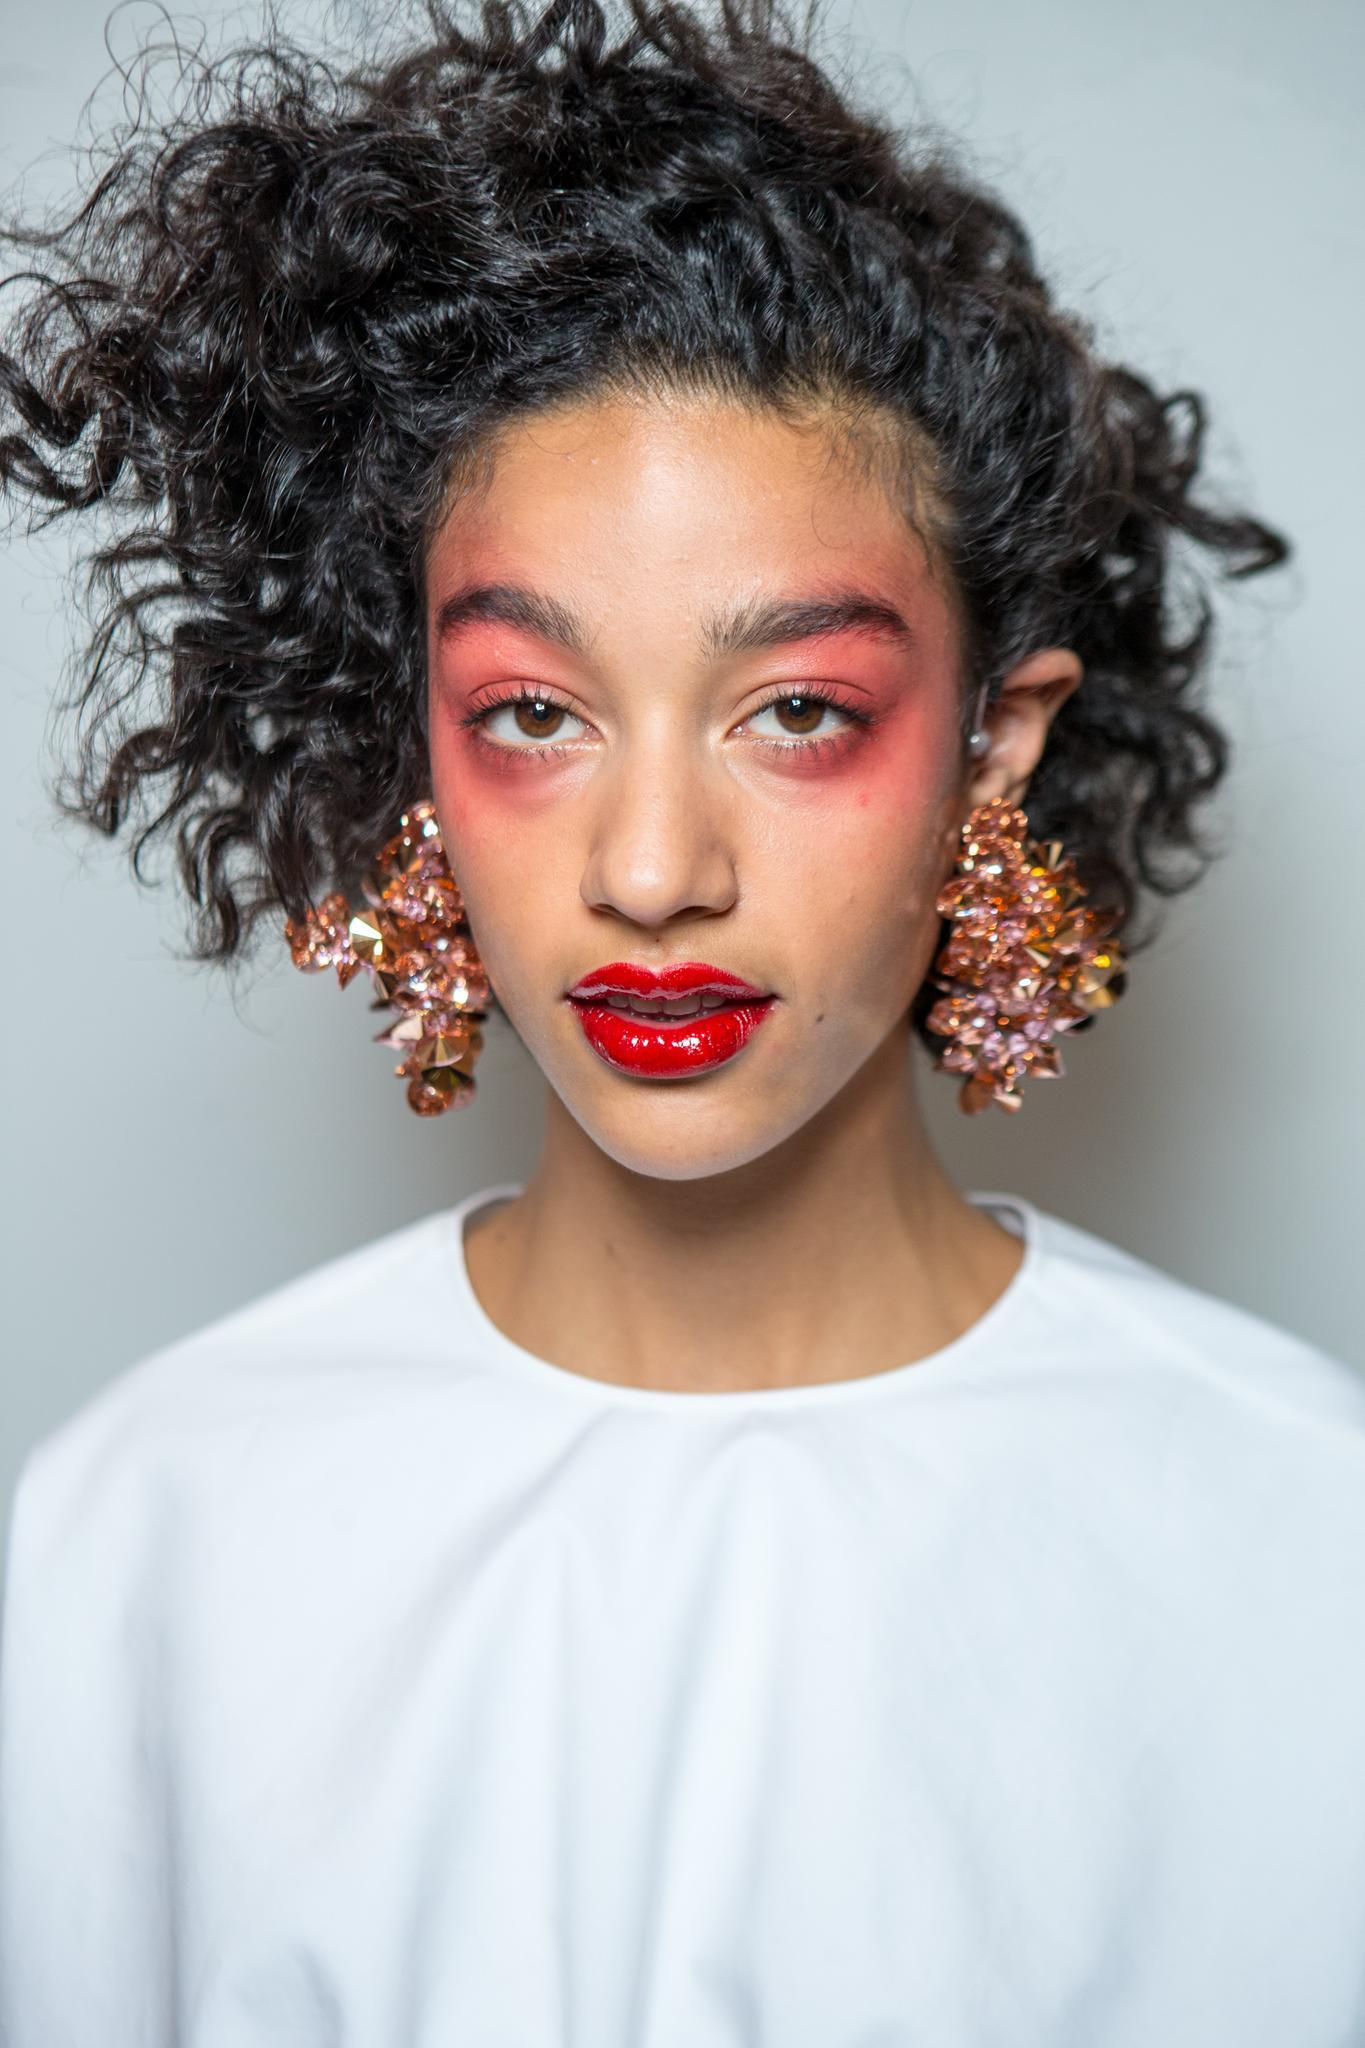 Make-up Trends 2018: Lidschatten everywhere